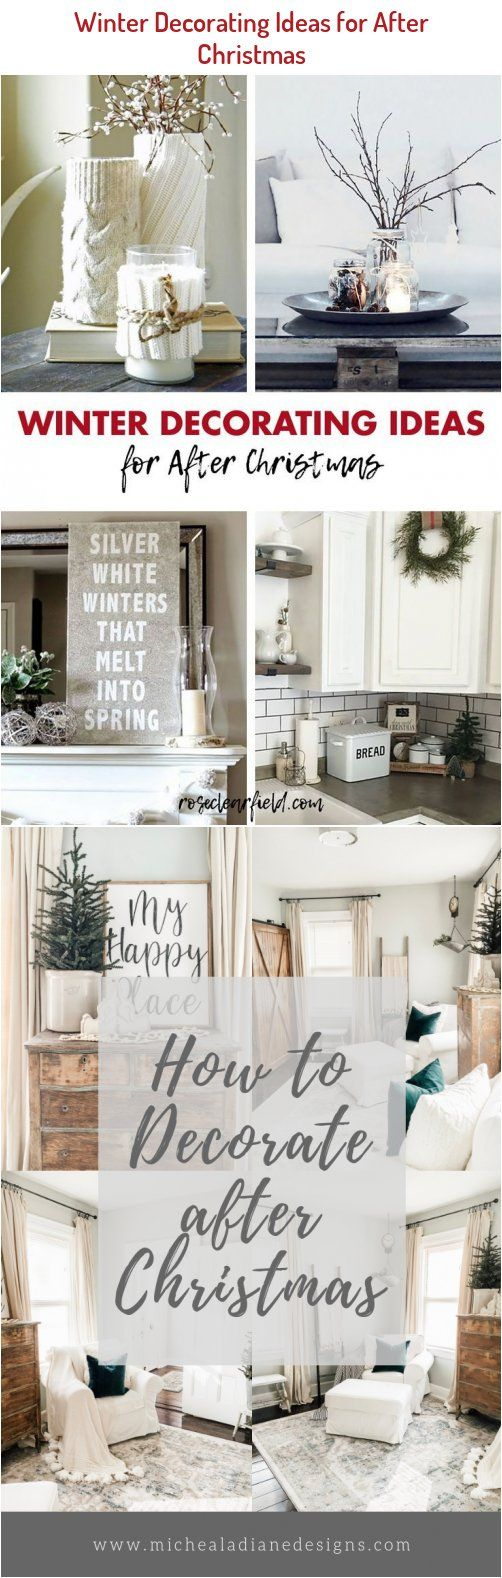 White House Christmas Decorations 2020 Scream Winter decorating ideas for after Christmas. Neutral decor